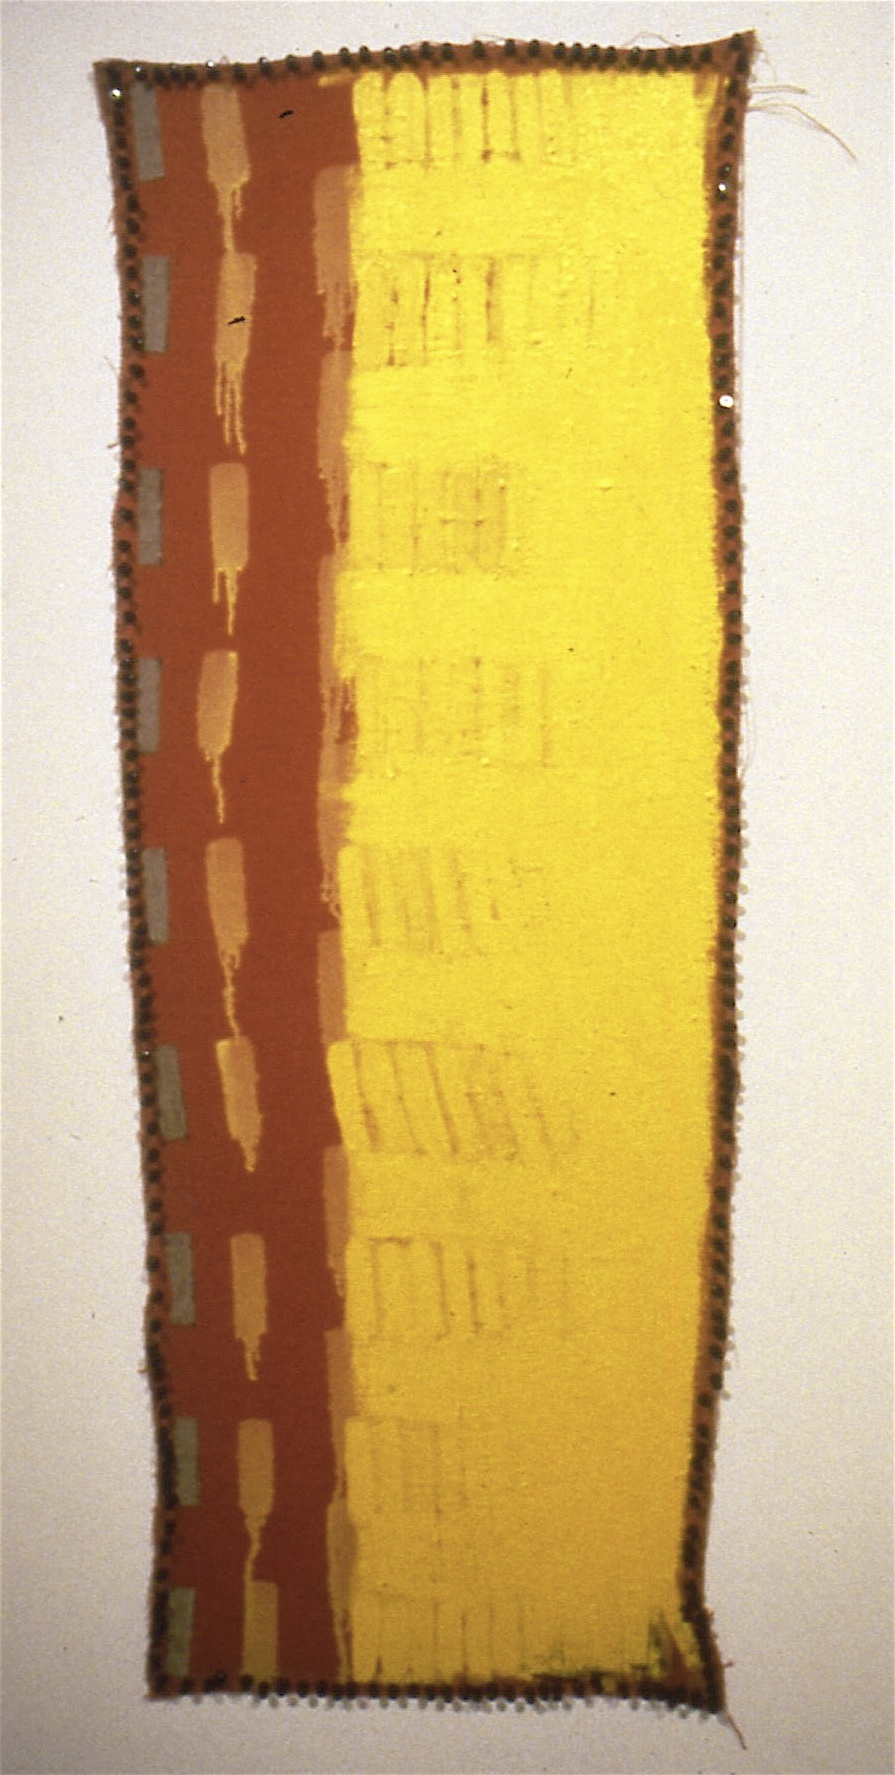 "Addition, Origin, 1992-93, oil on linen with pushpins, 51 1/2""x 18 1/2"""